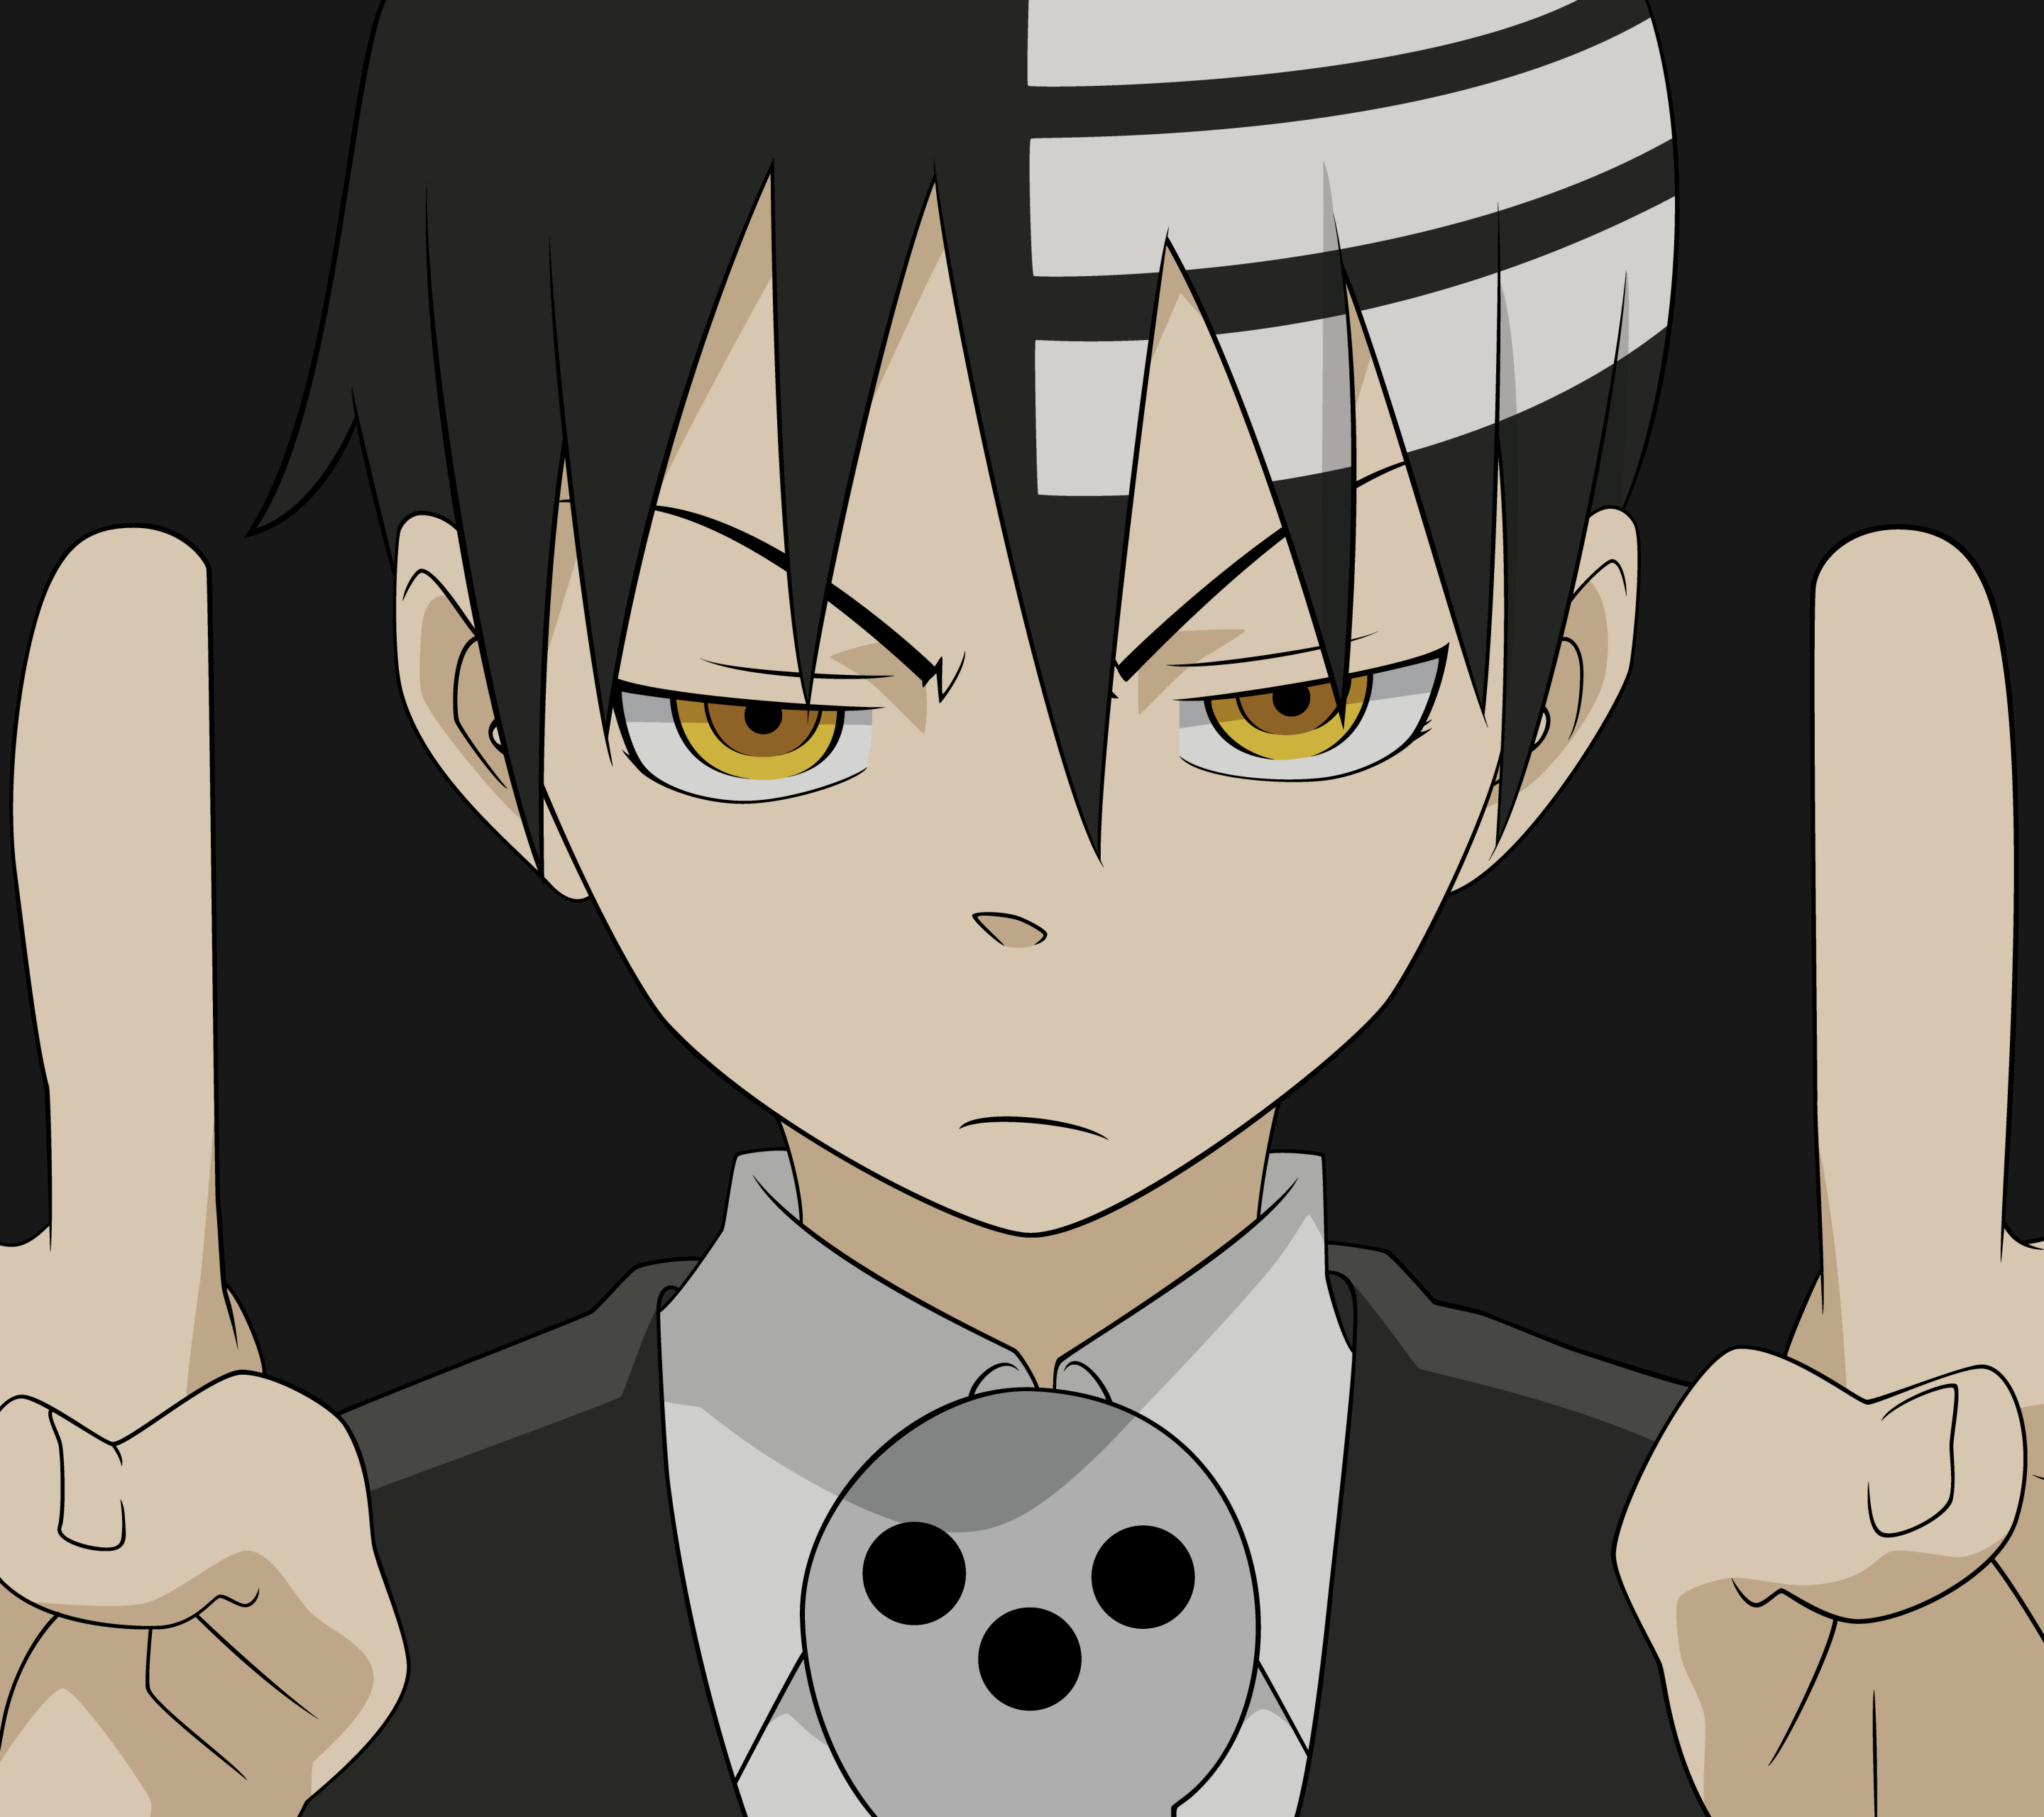 Anime Soul Eater 2880x2560 Mobile Wallpaper